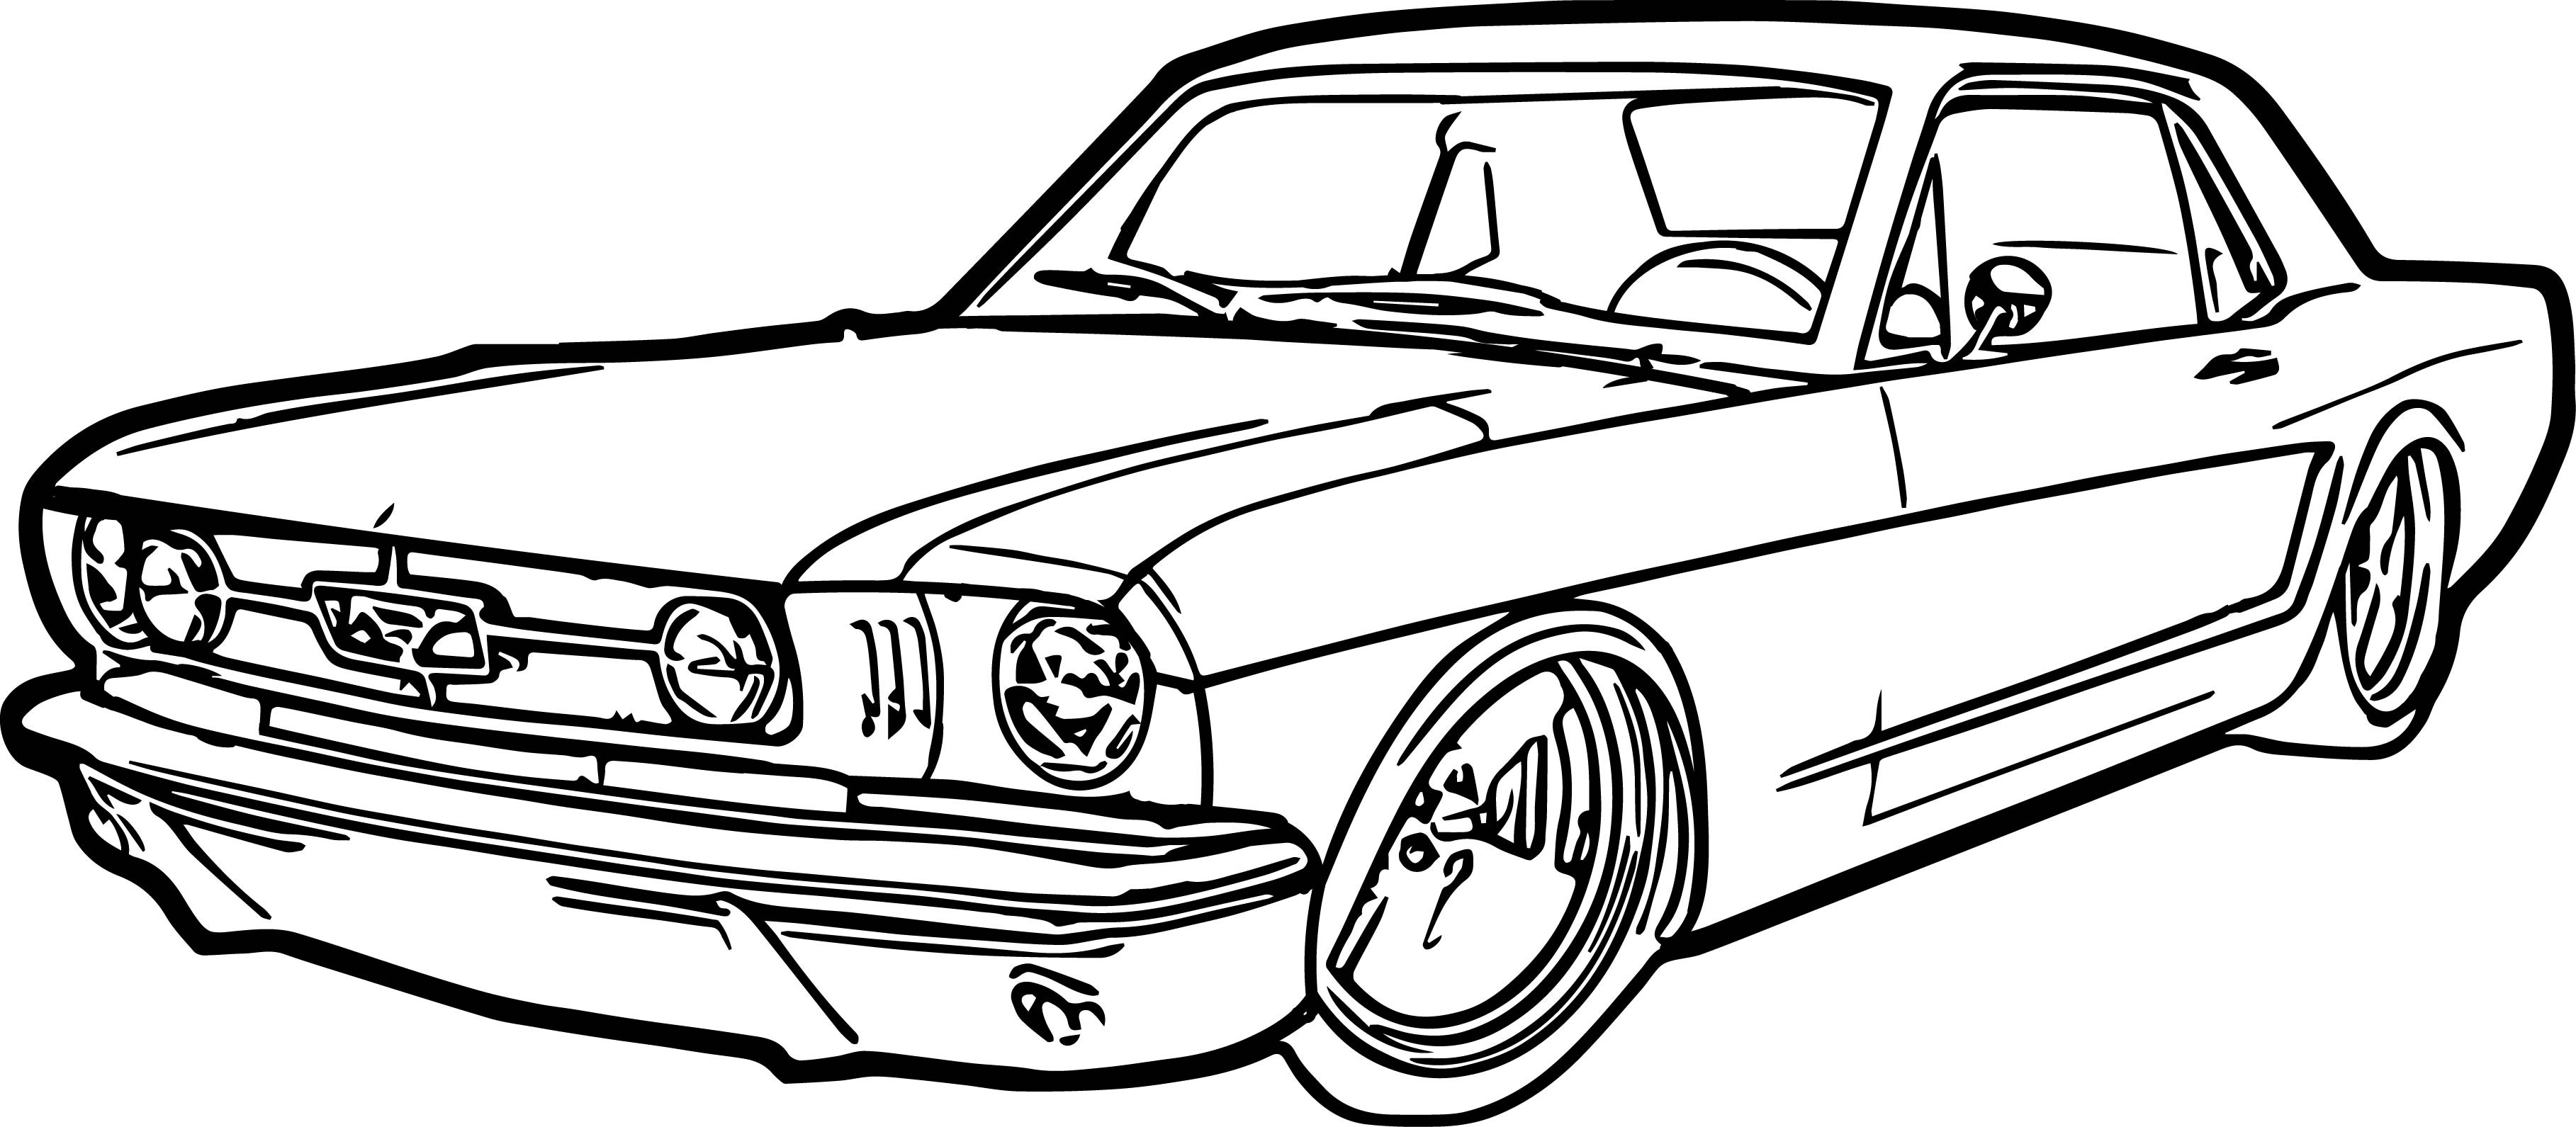 3635x1591 Classic Muscle Car Coloring Pages Lovely Good Coloring Pages